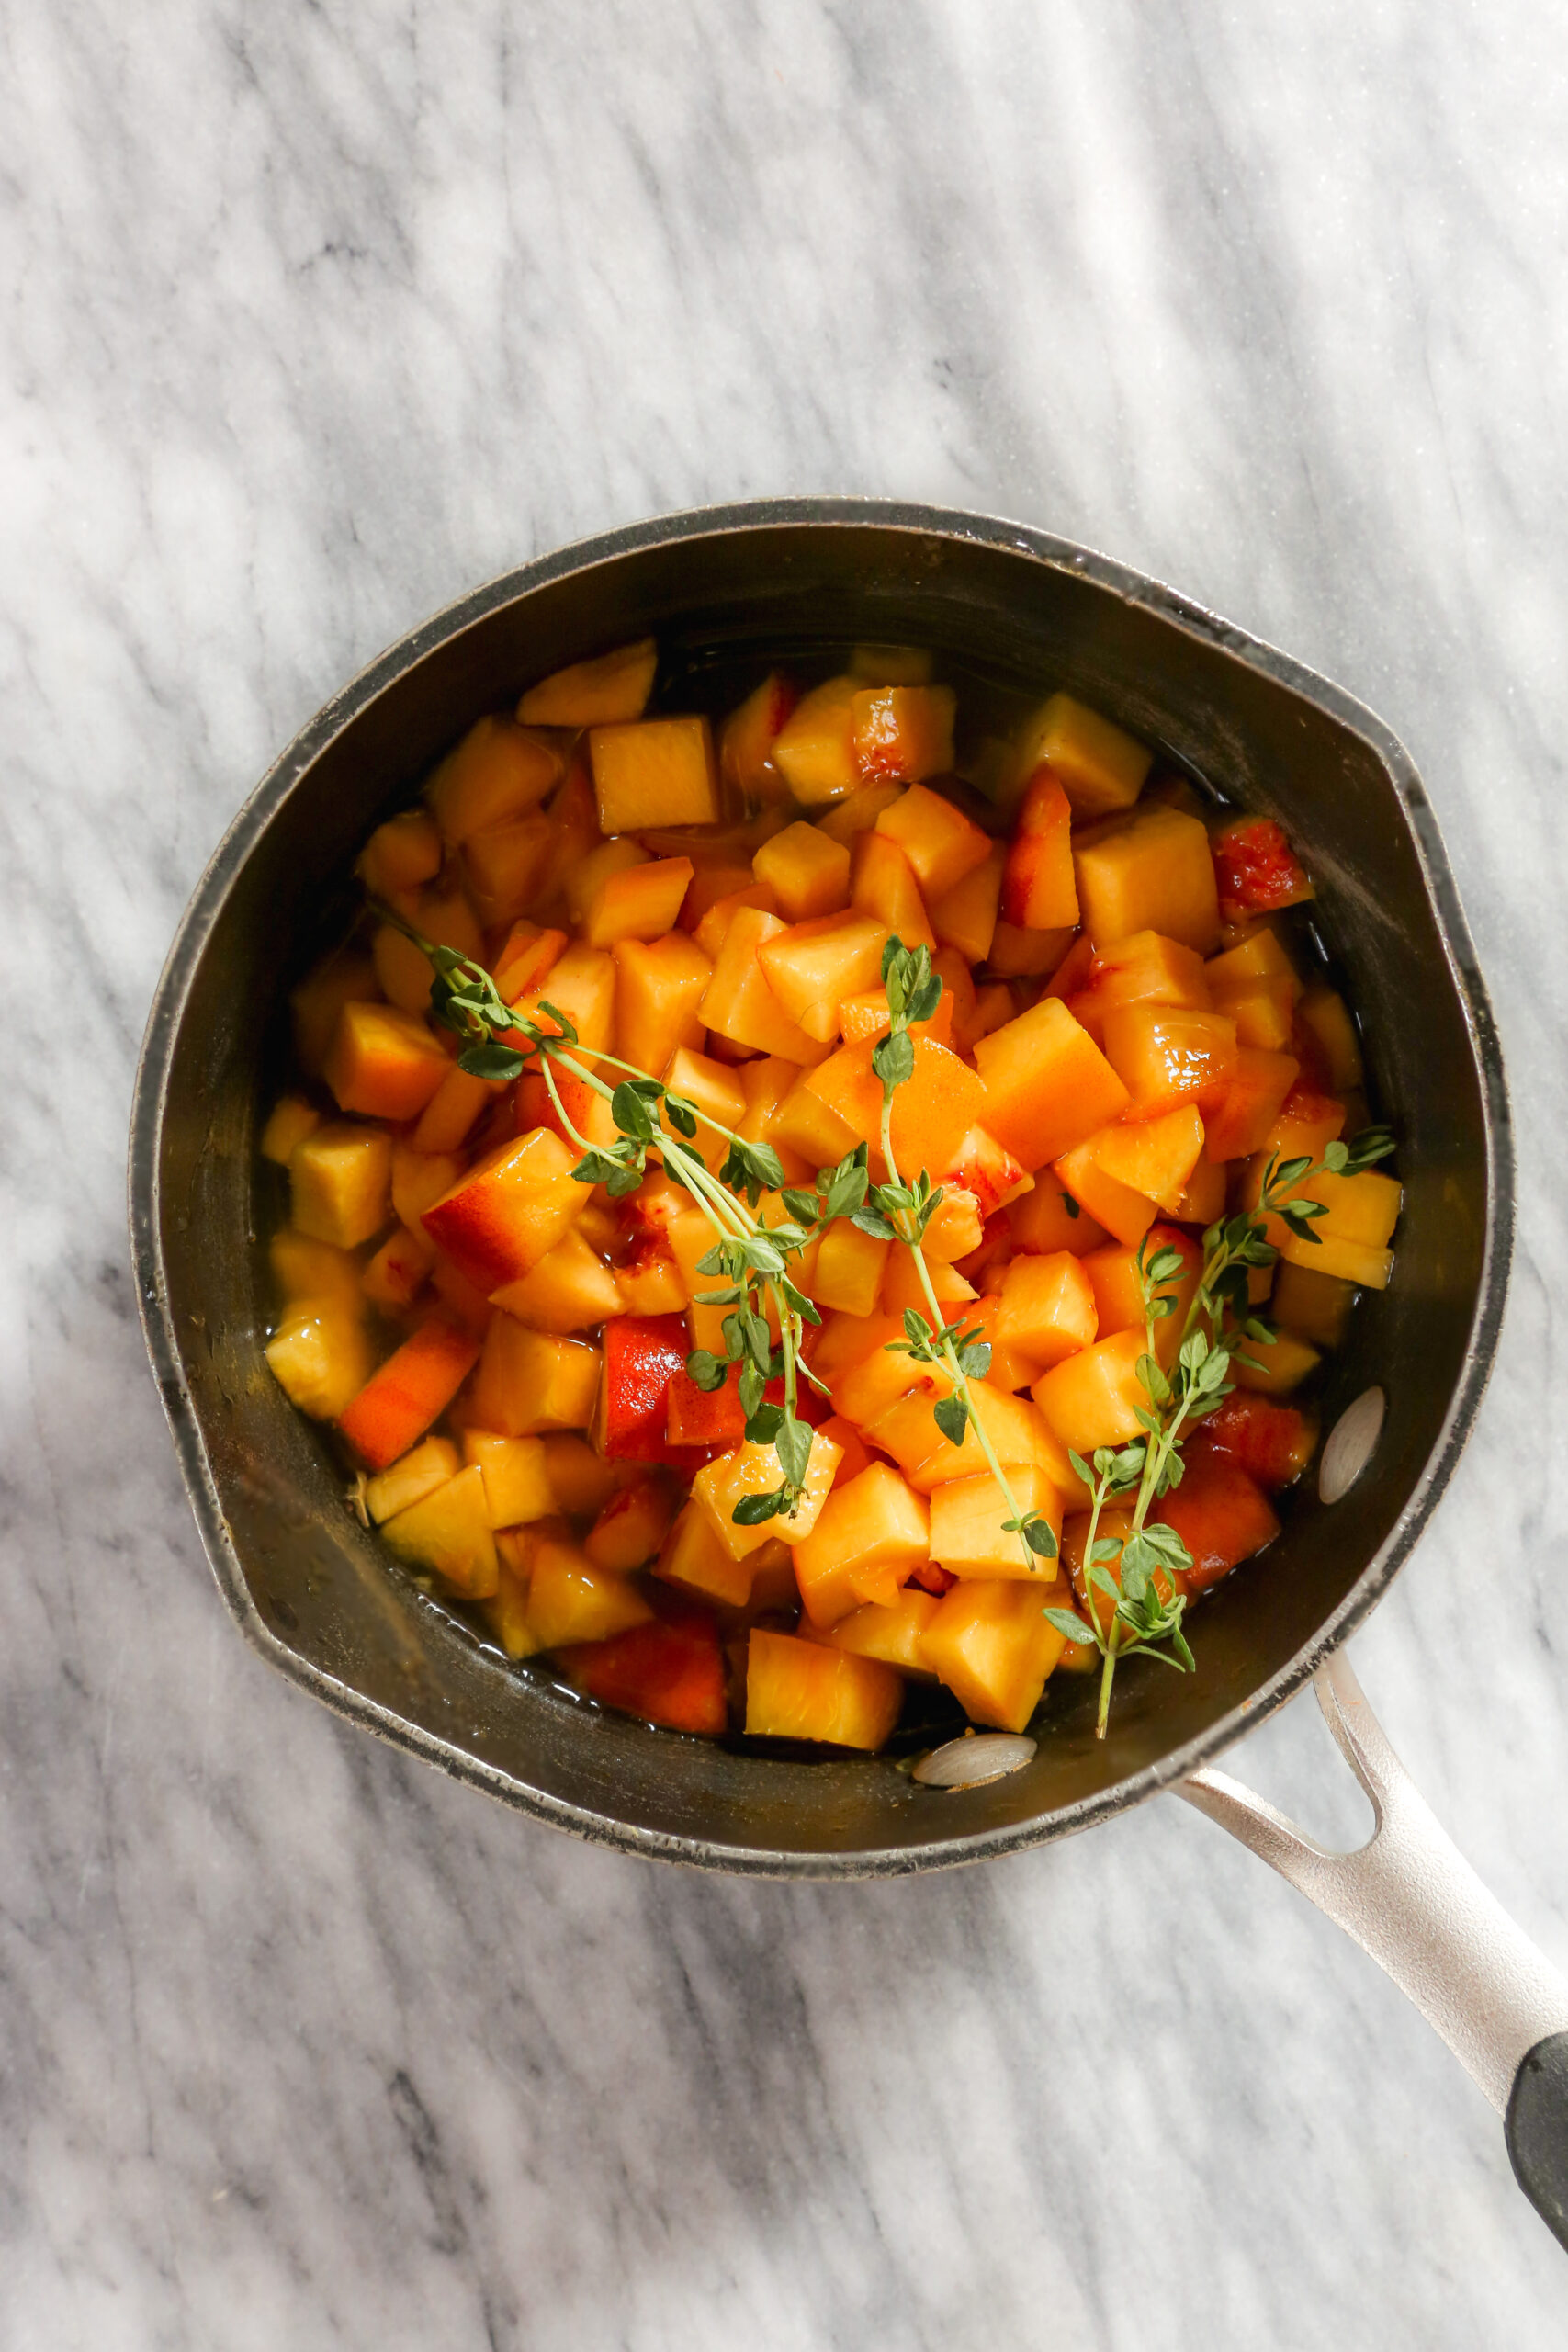 Diced peaches and fresh thyme sprigs in a saucepan set on a marble surface.